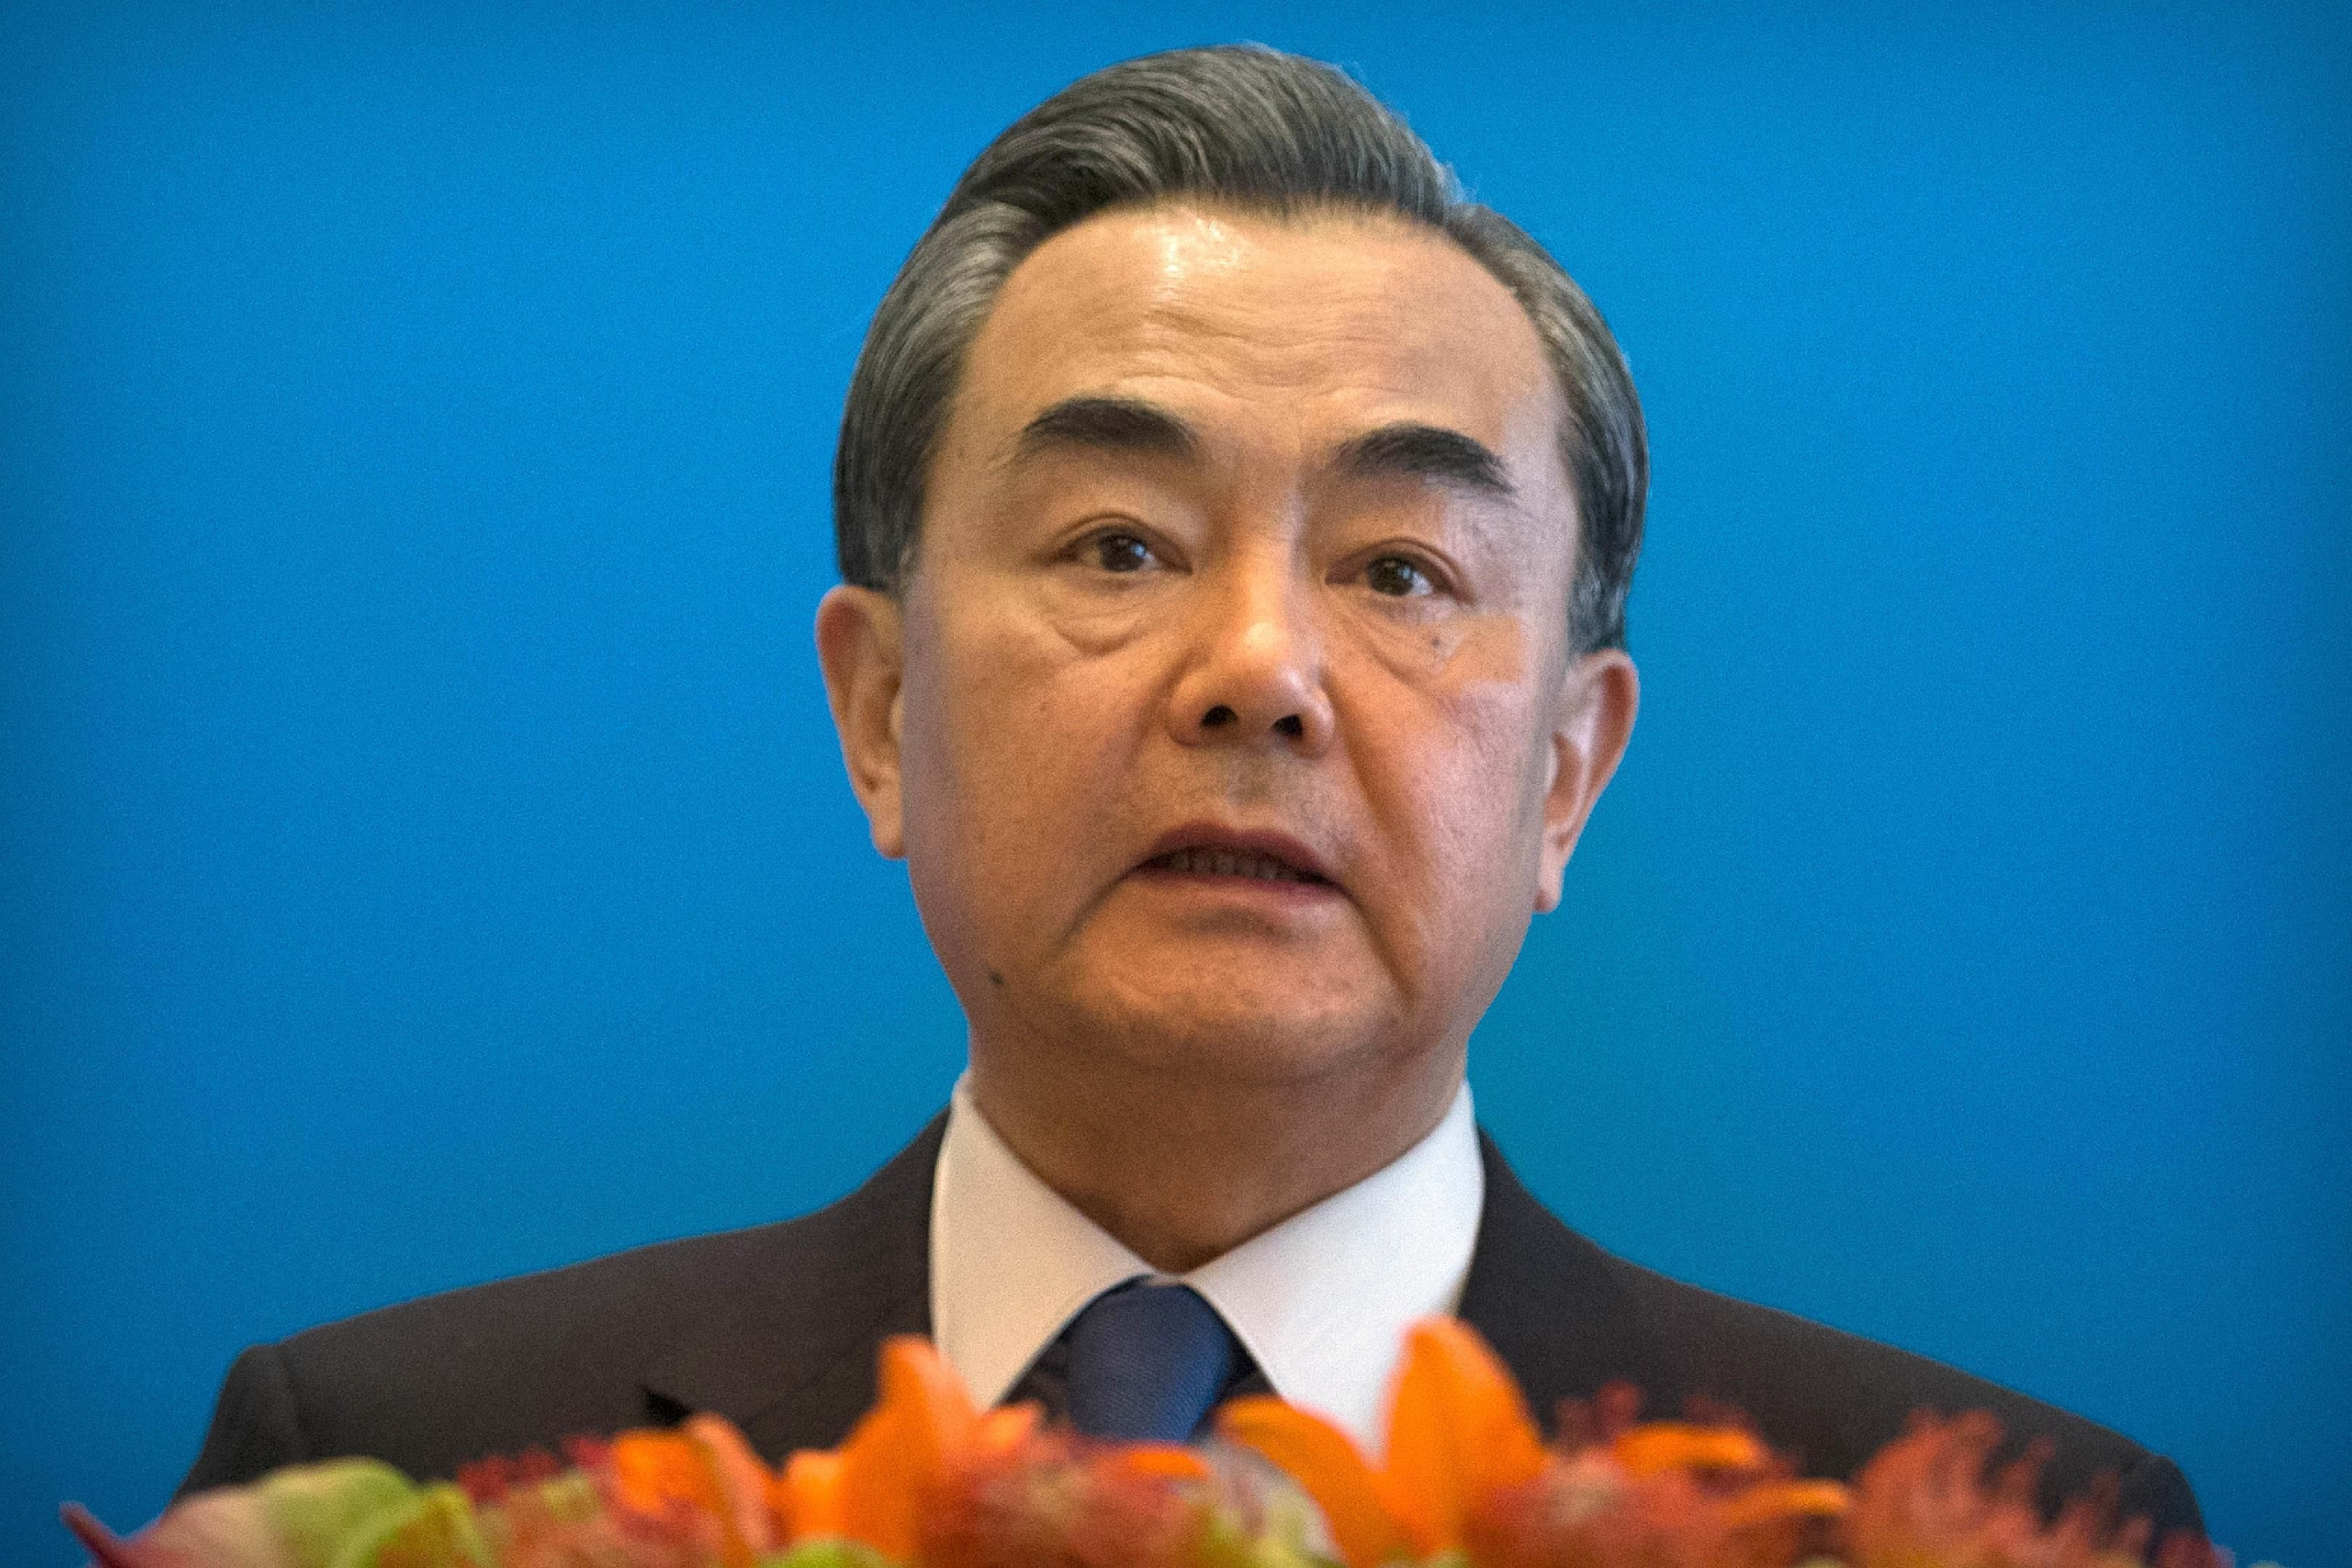 China says it will cooperate with Trump but warns on Taiwan